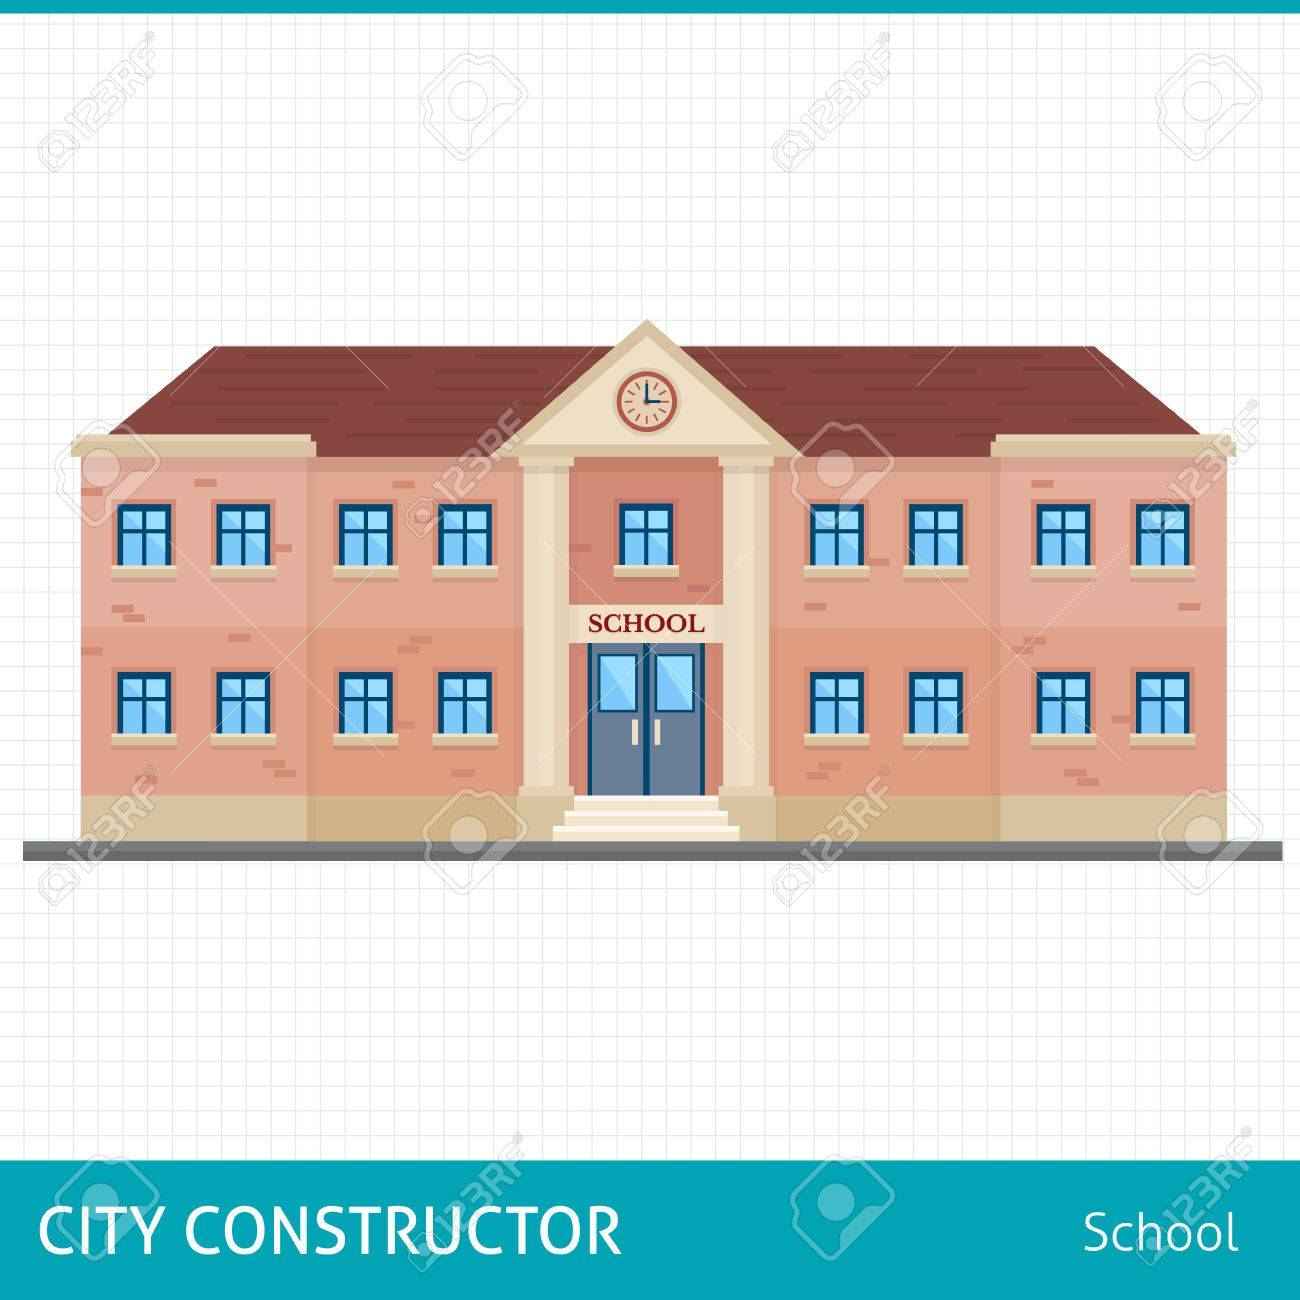 School and education. Buildings for city construction. Set of elements to create urban background, village and town landscape. Flat style vector illustration. - 48078002